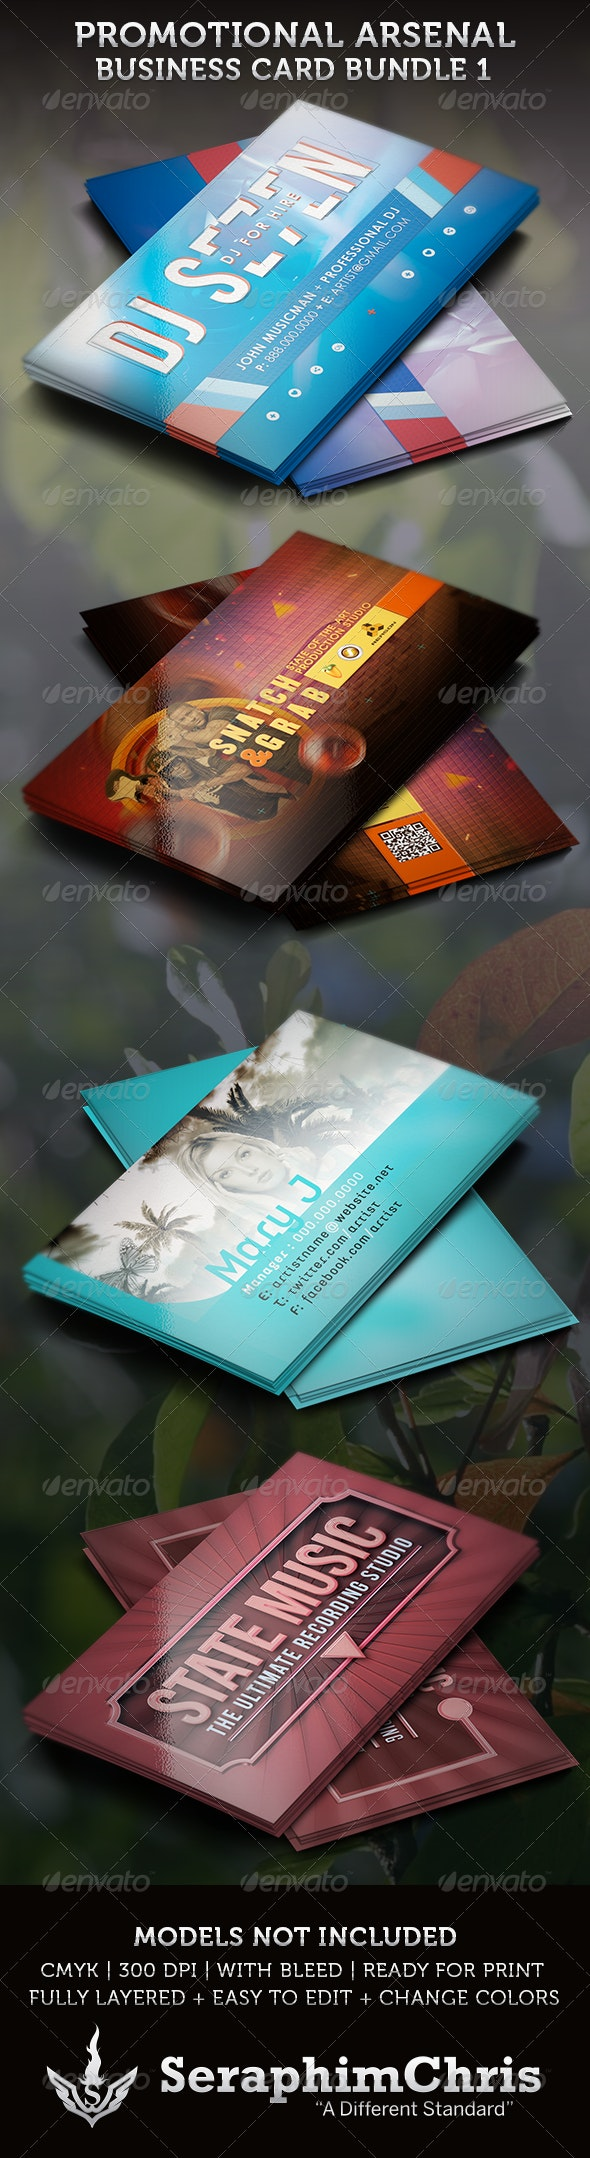 Promotional Arsenal Business Card Bundle 1 - Industry Specific Business Cards